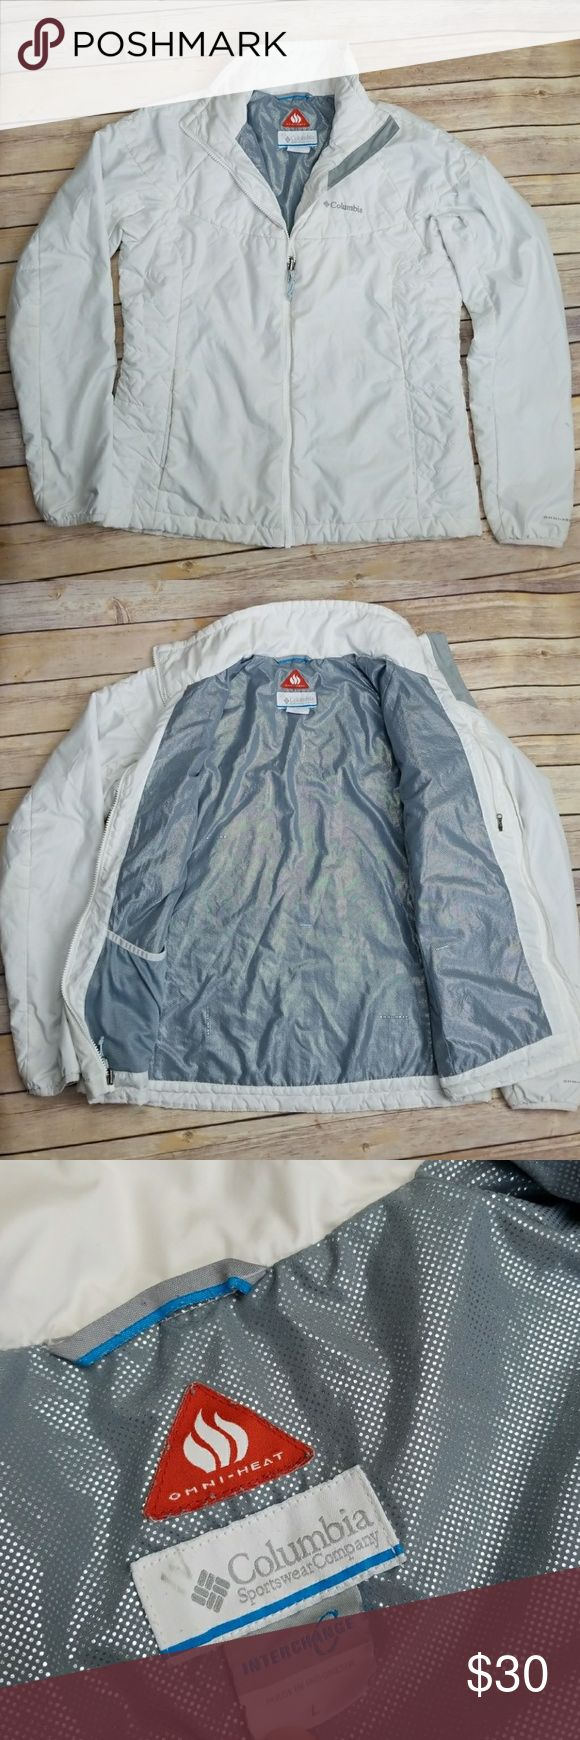 Columbia jacket how to wash